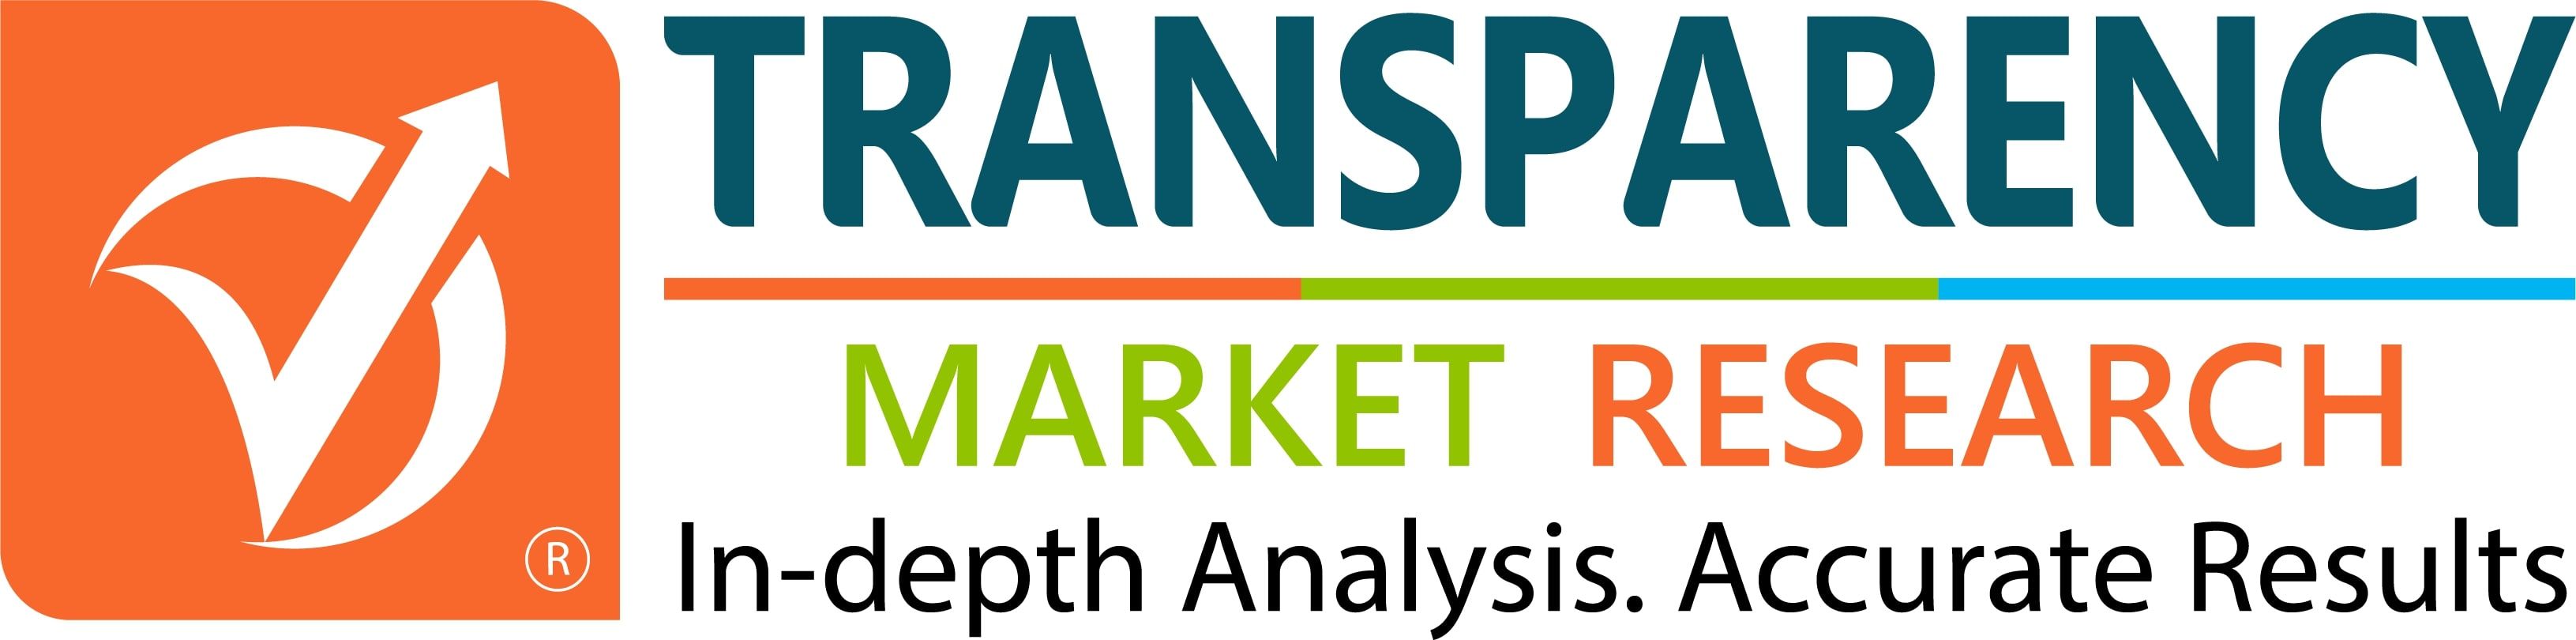 Gynecology Devices Market Size is Set to Experience Revolutionary Growth by 2026 | Transparency Market Research